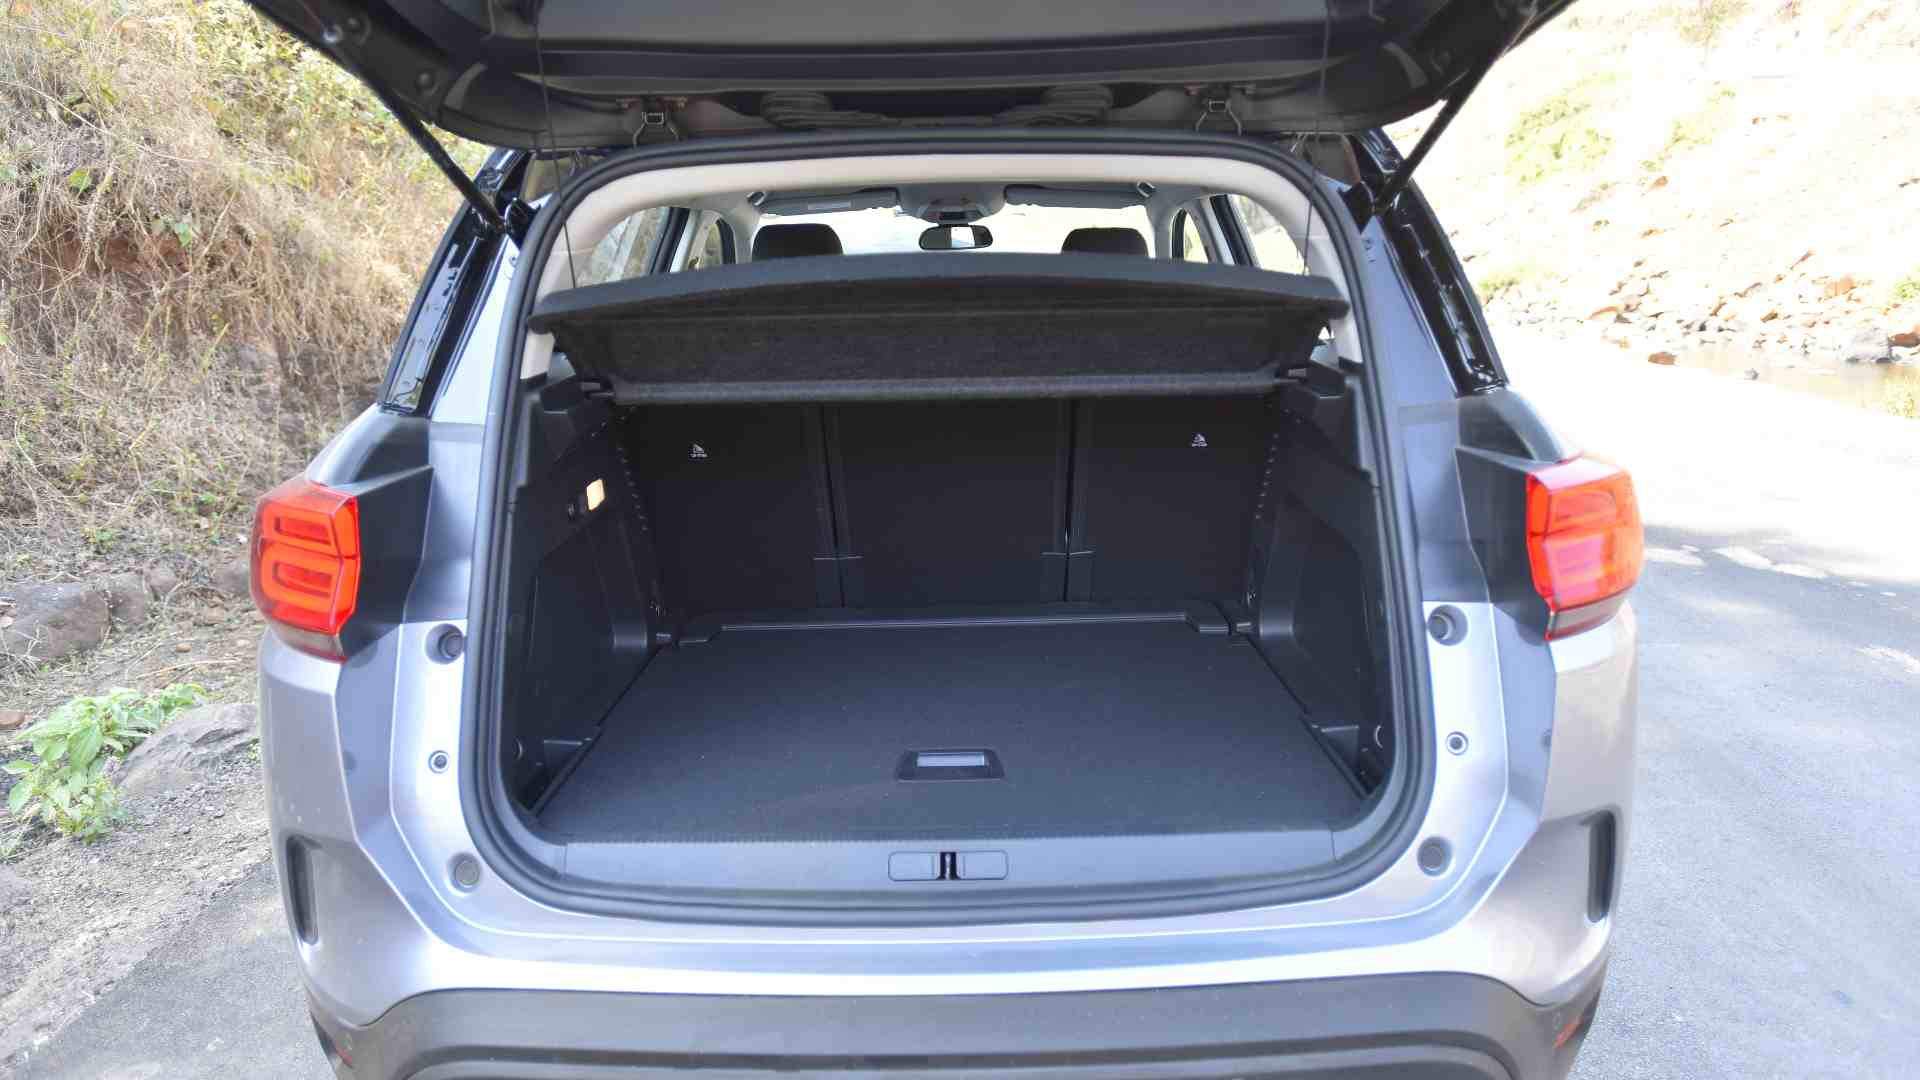 580-litre boot has enough room to comfortably gobble up luggage. Image: Overdrive/Anis Shaikh